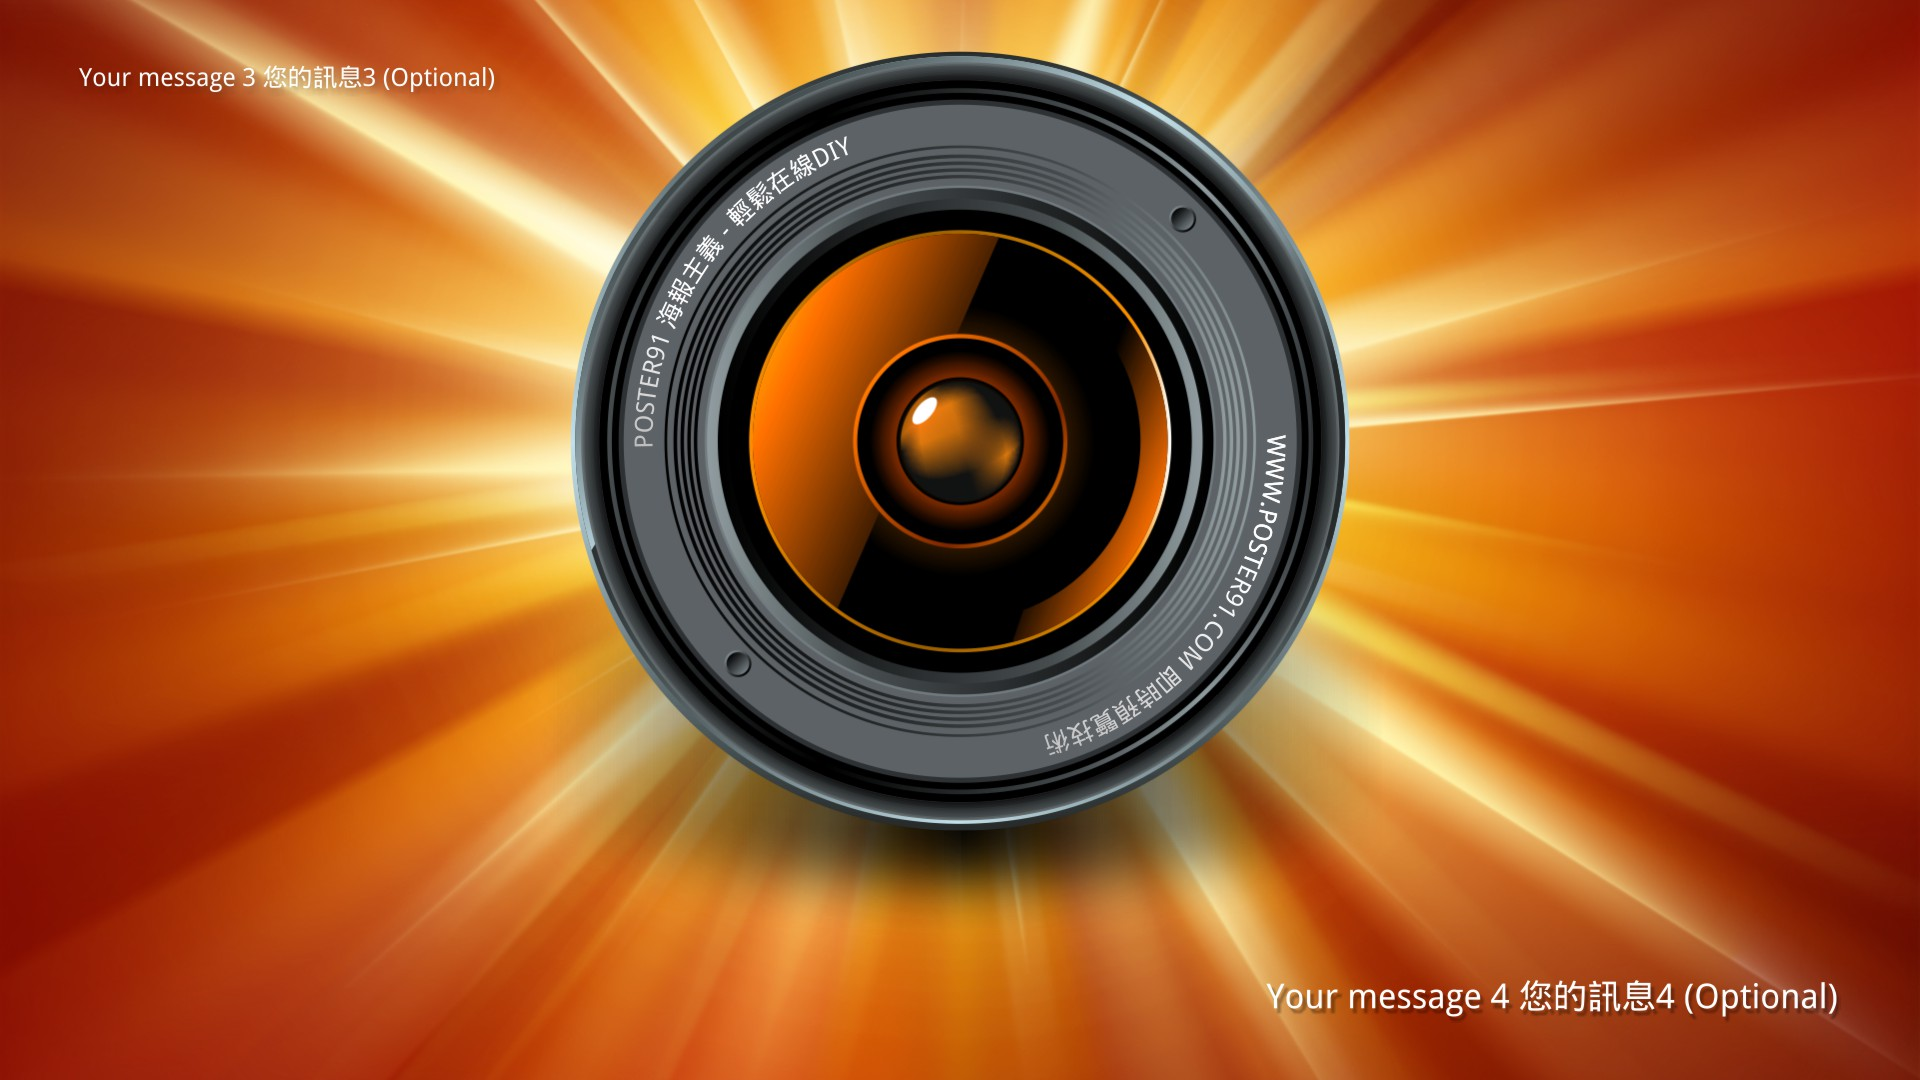 Camera-lens-generator-are-you-the-same-in-front-of-the-camera-1920-x-1080-pixels-HD-ima-wallpaper-wp3603855